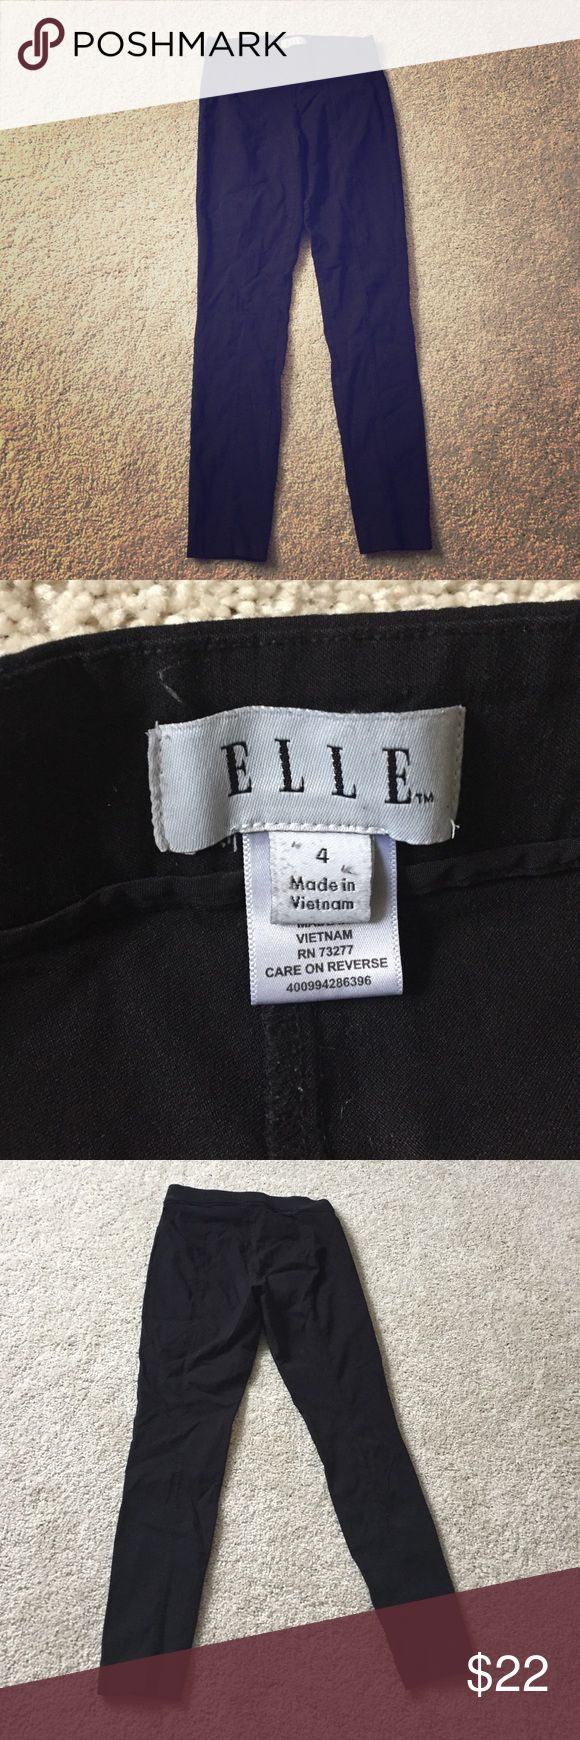 Black Skinny Pants Women's skinny black pull on pants. Great for dressing up for work or with a sweater for a casual legging look around the house! These are so comfy and well loved but in great condition! The only signs of wear are in picture 4 on the back of the pants. Size 4. Elle Pants Skinny